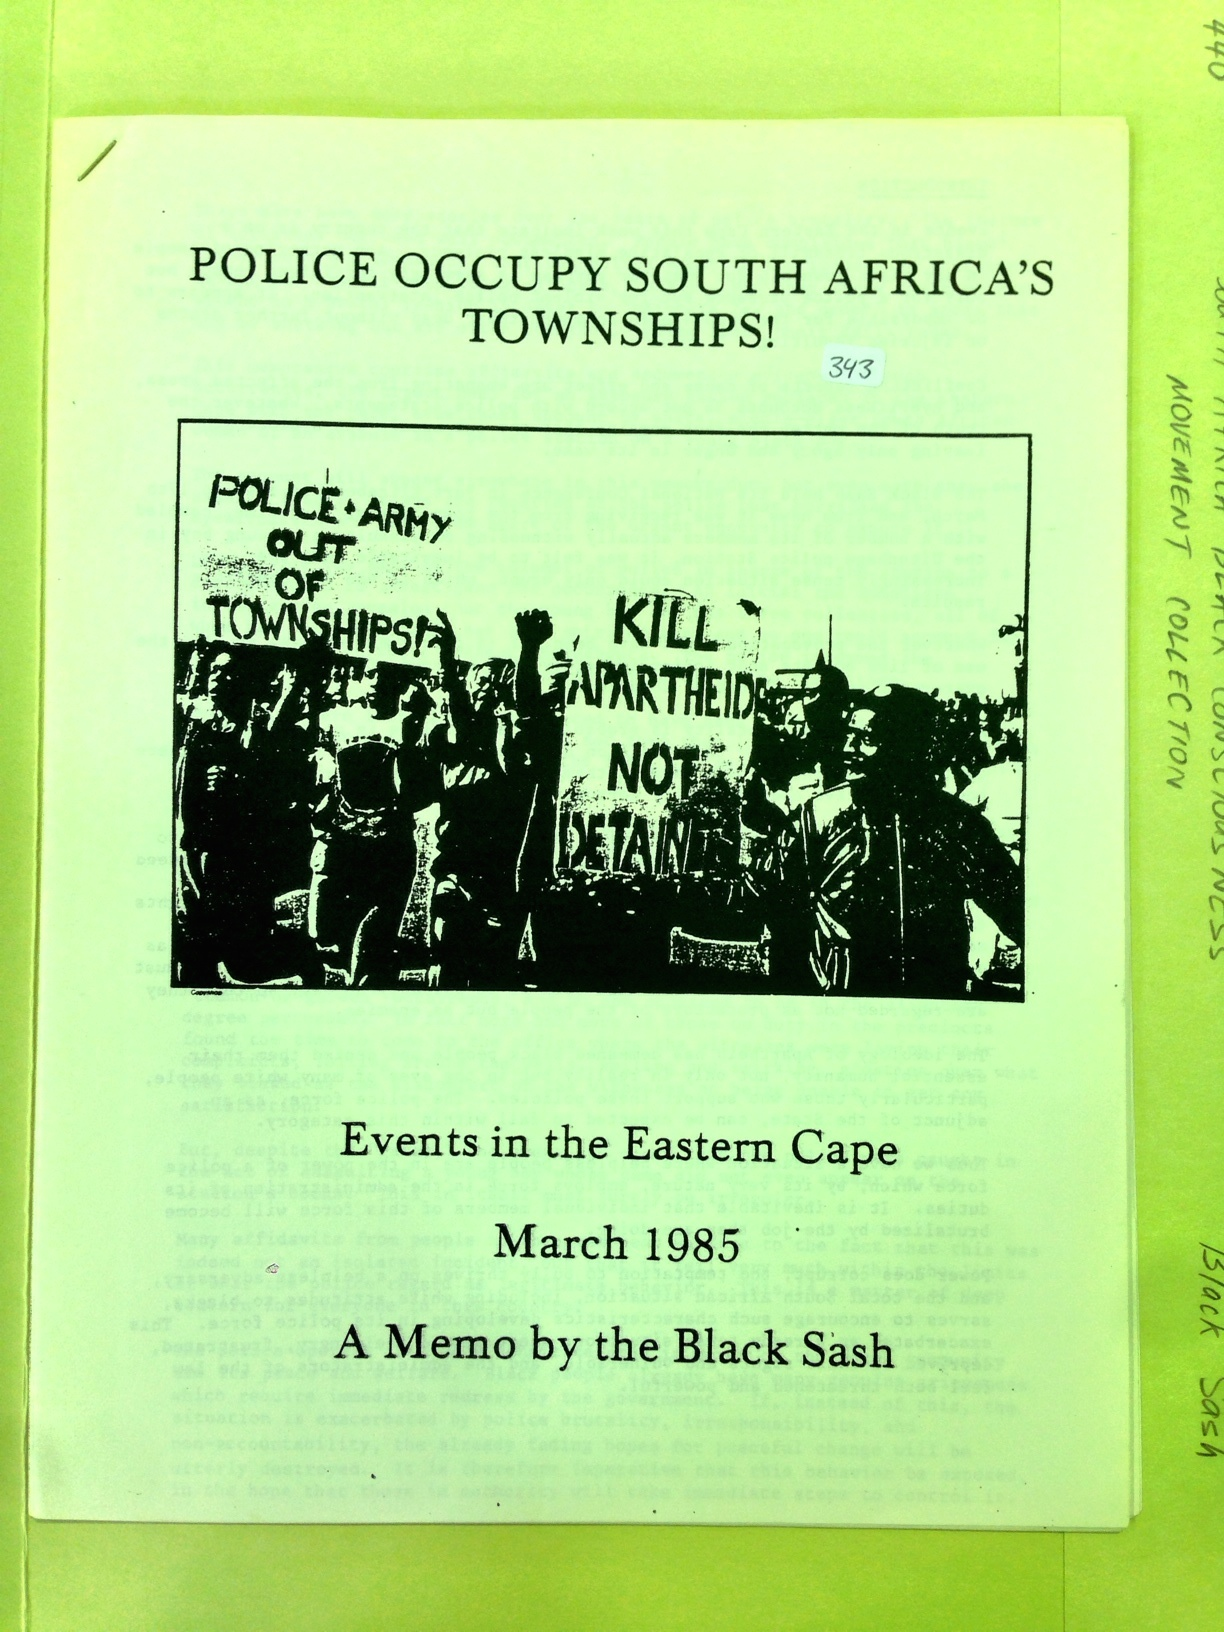 police brutality and profiling essay Police brutality essay the price of police brutality chris lawton union institute and university  essay about racial profiling by police.